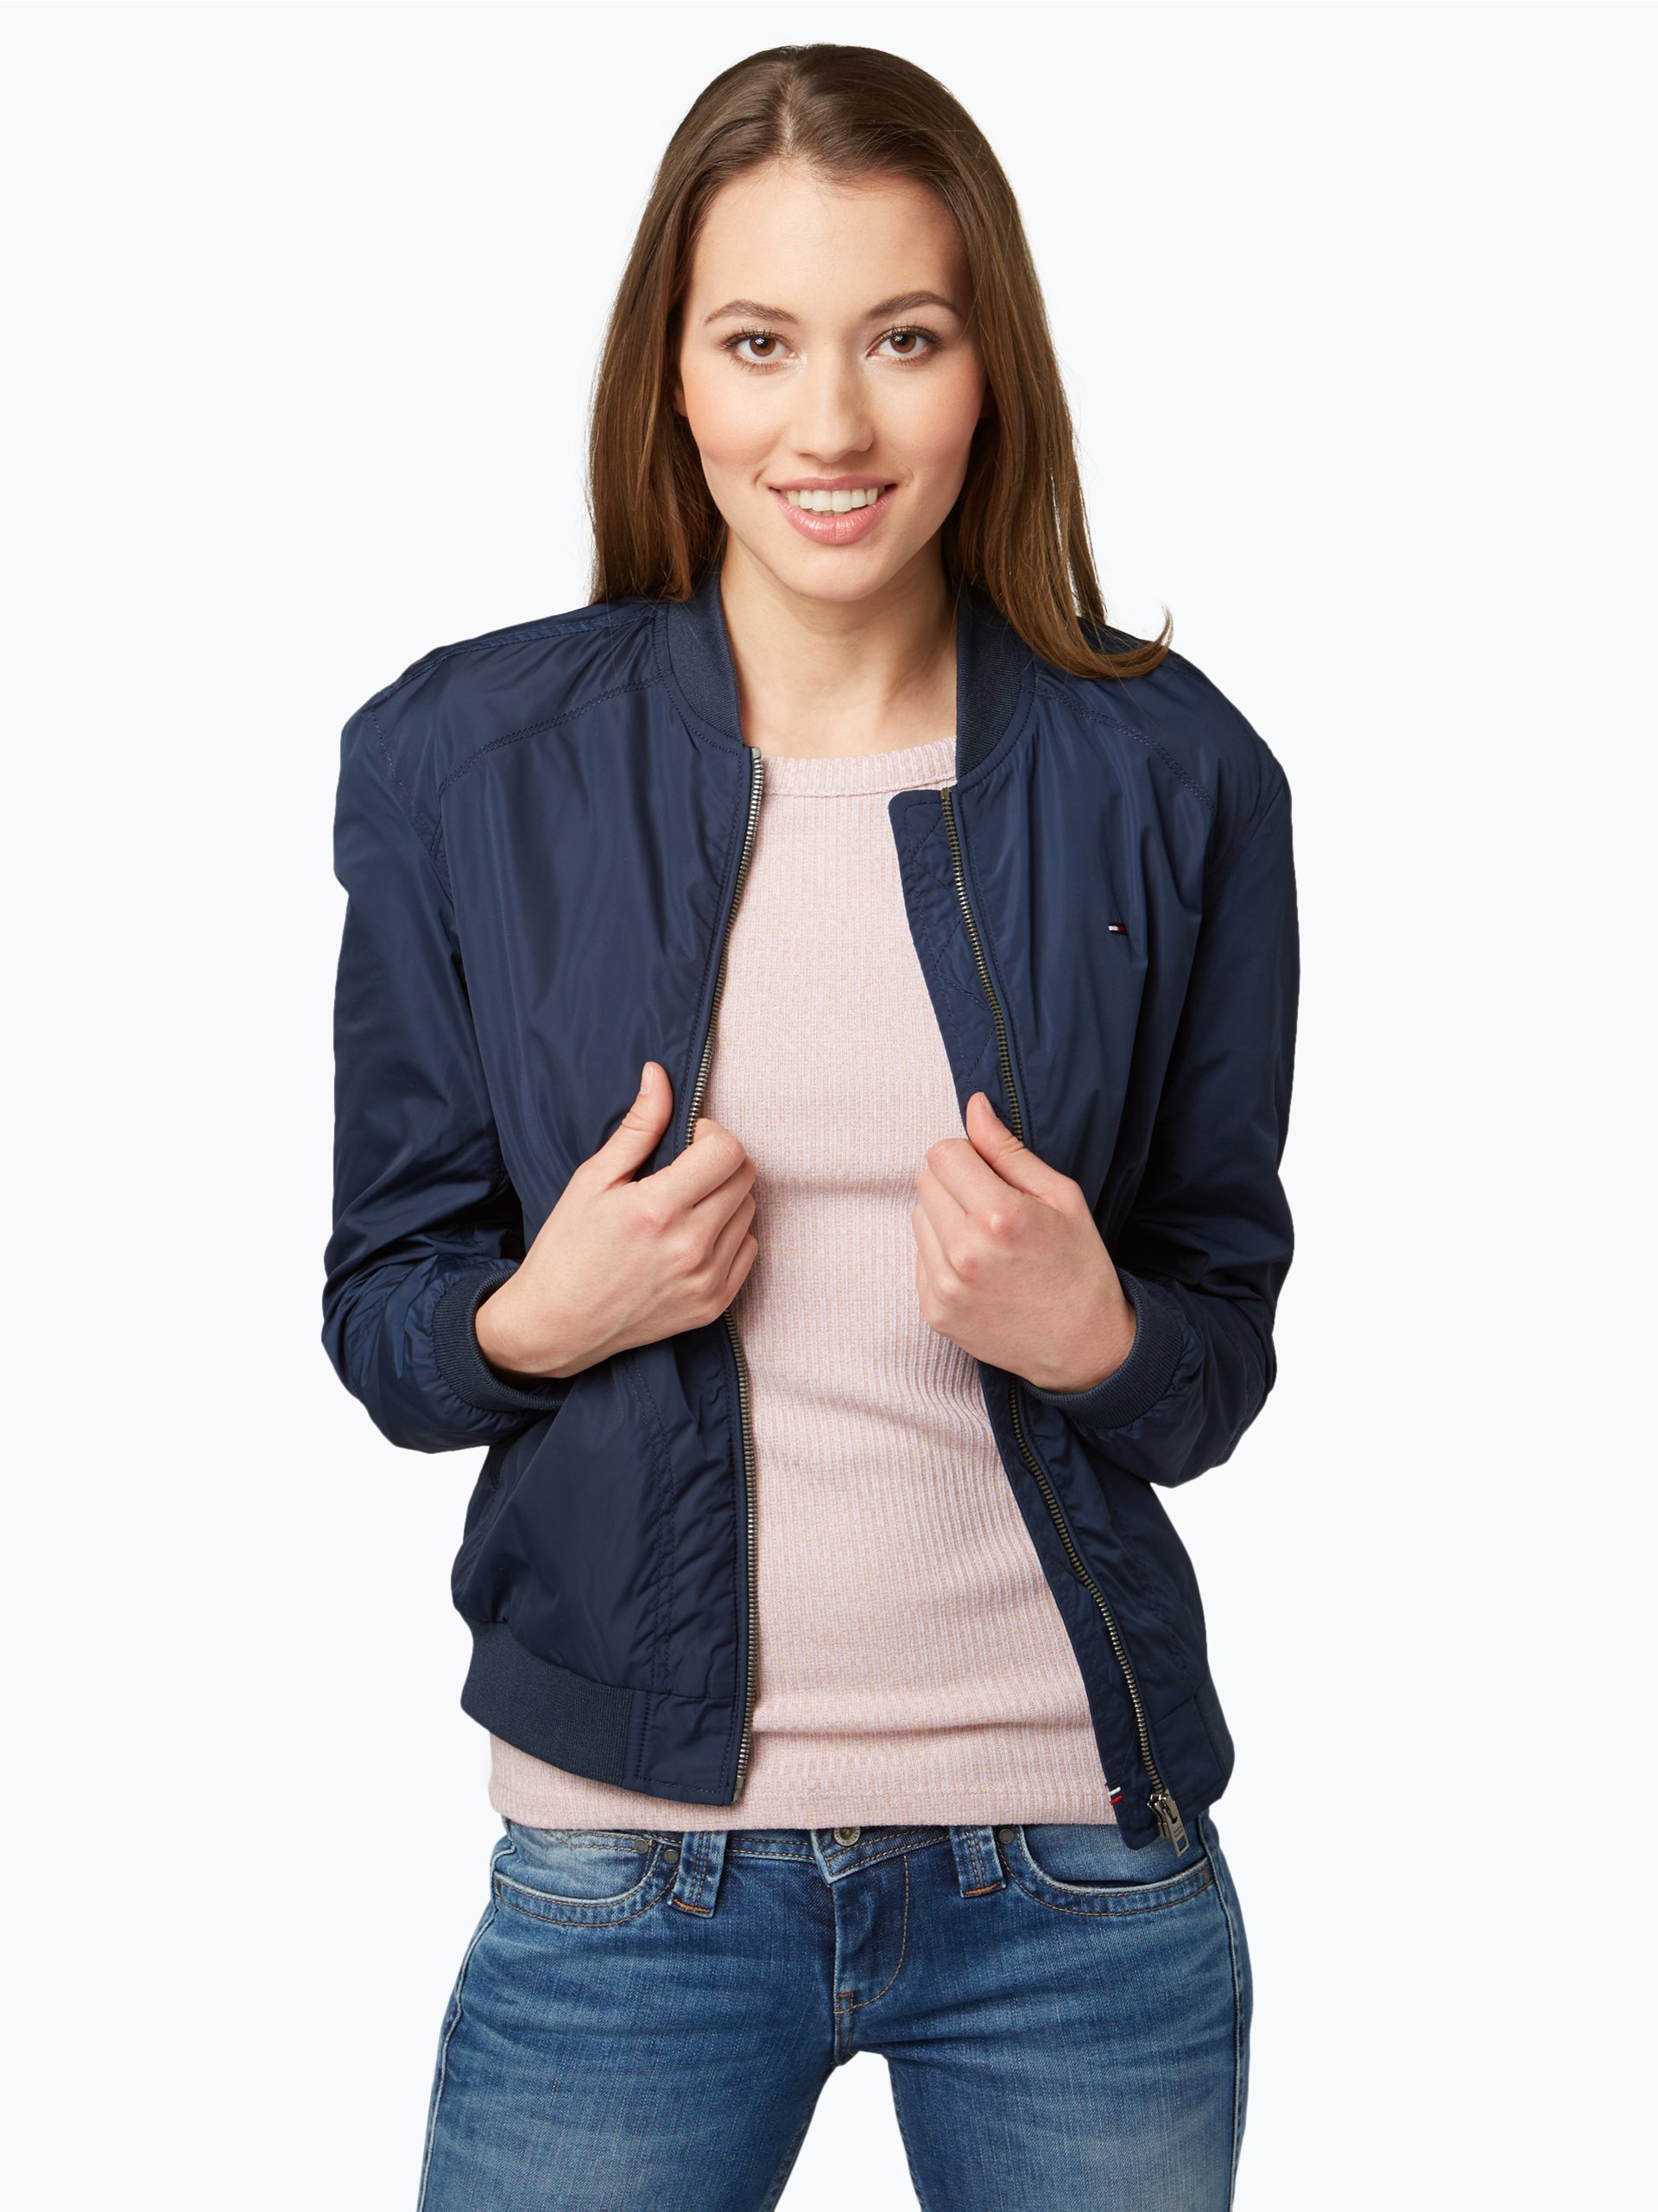 hilfiger denim damen jacke marine uni online kaufen. Black Bedroom Furniture Sets. Home Design Ideas